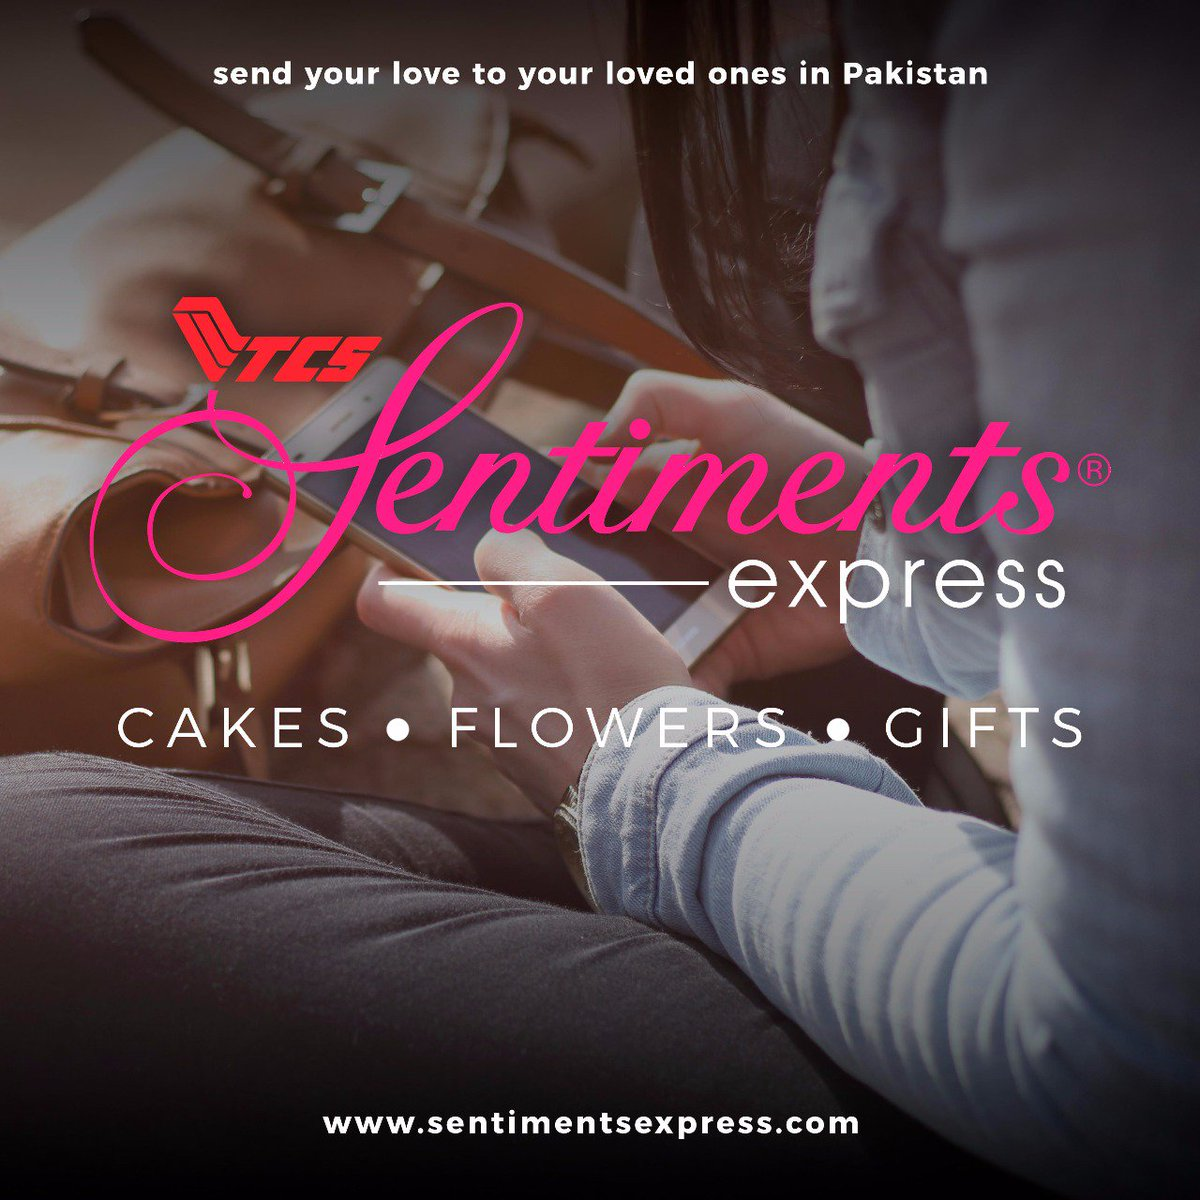 Send Cakes, Flowers, Mithai, Chocolates & Gifts for any Occasion from any where in the world to Pakistan👉 {https://t.co/jHkyAxoCEQ . …} ||#cakes #flowers #mithai #chocolates #gifts #occasion #world #pakistan #london #england #ireland #wales #scotland https://t.co/twyCgRjmHH